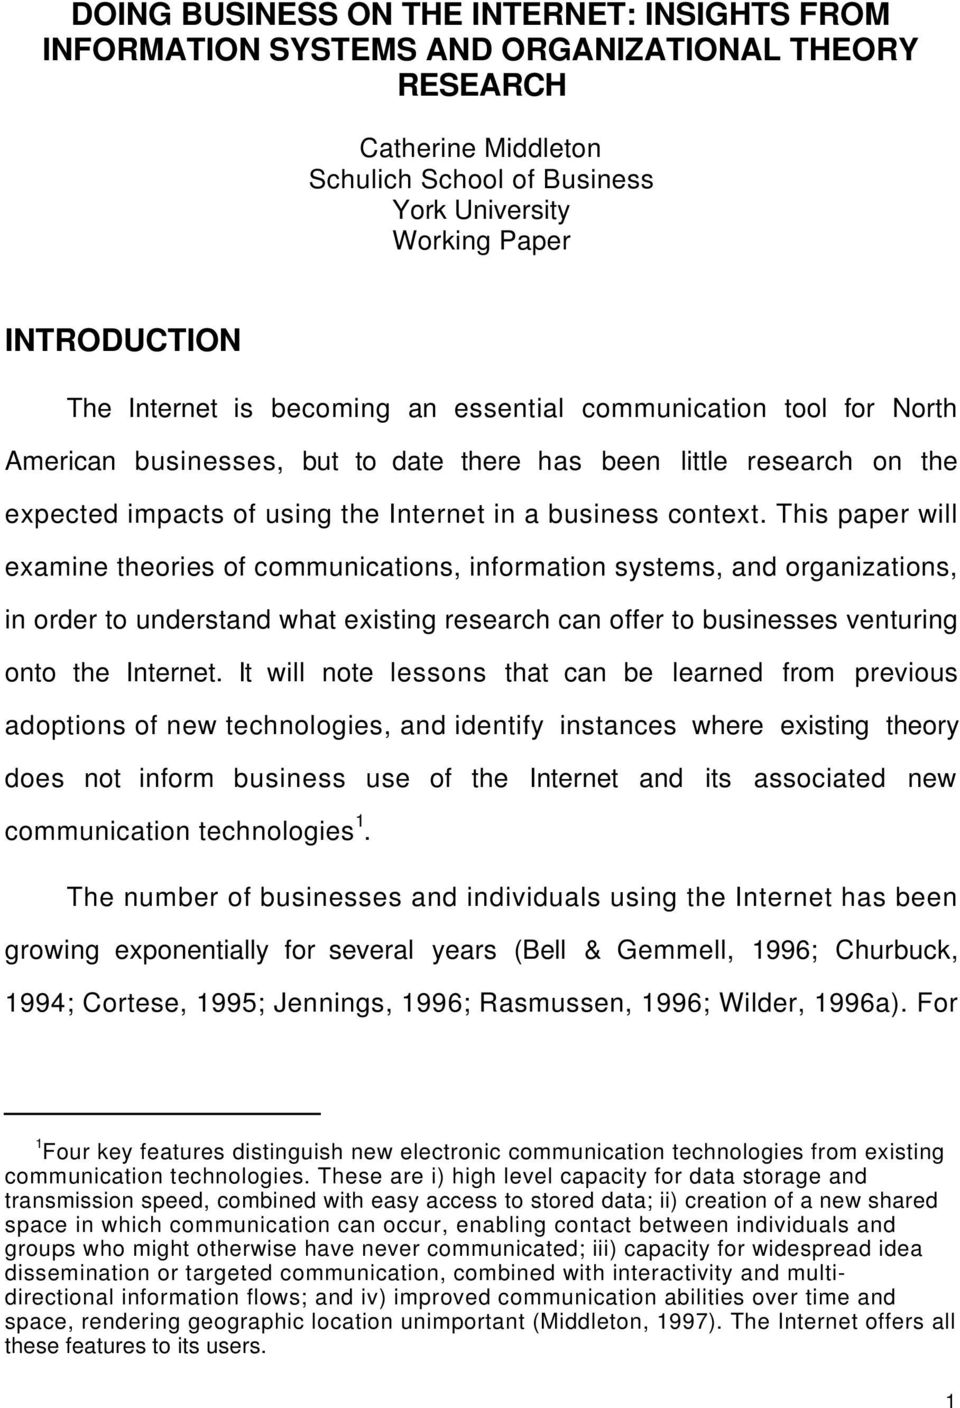 This paper will examine theories of communications, information systems, and organizations, in order to understand what existing research can offer to businesses venturing onto the Internet.